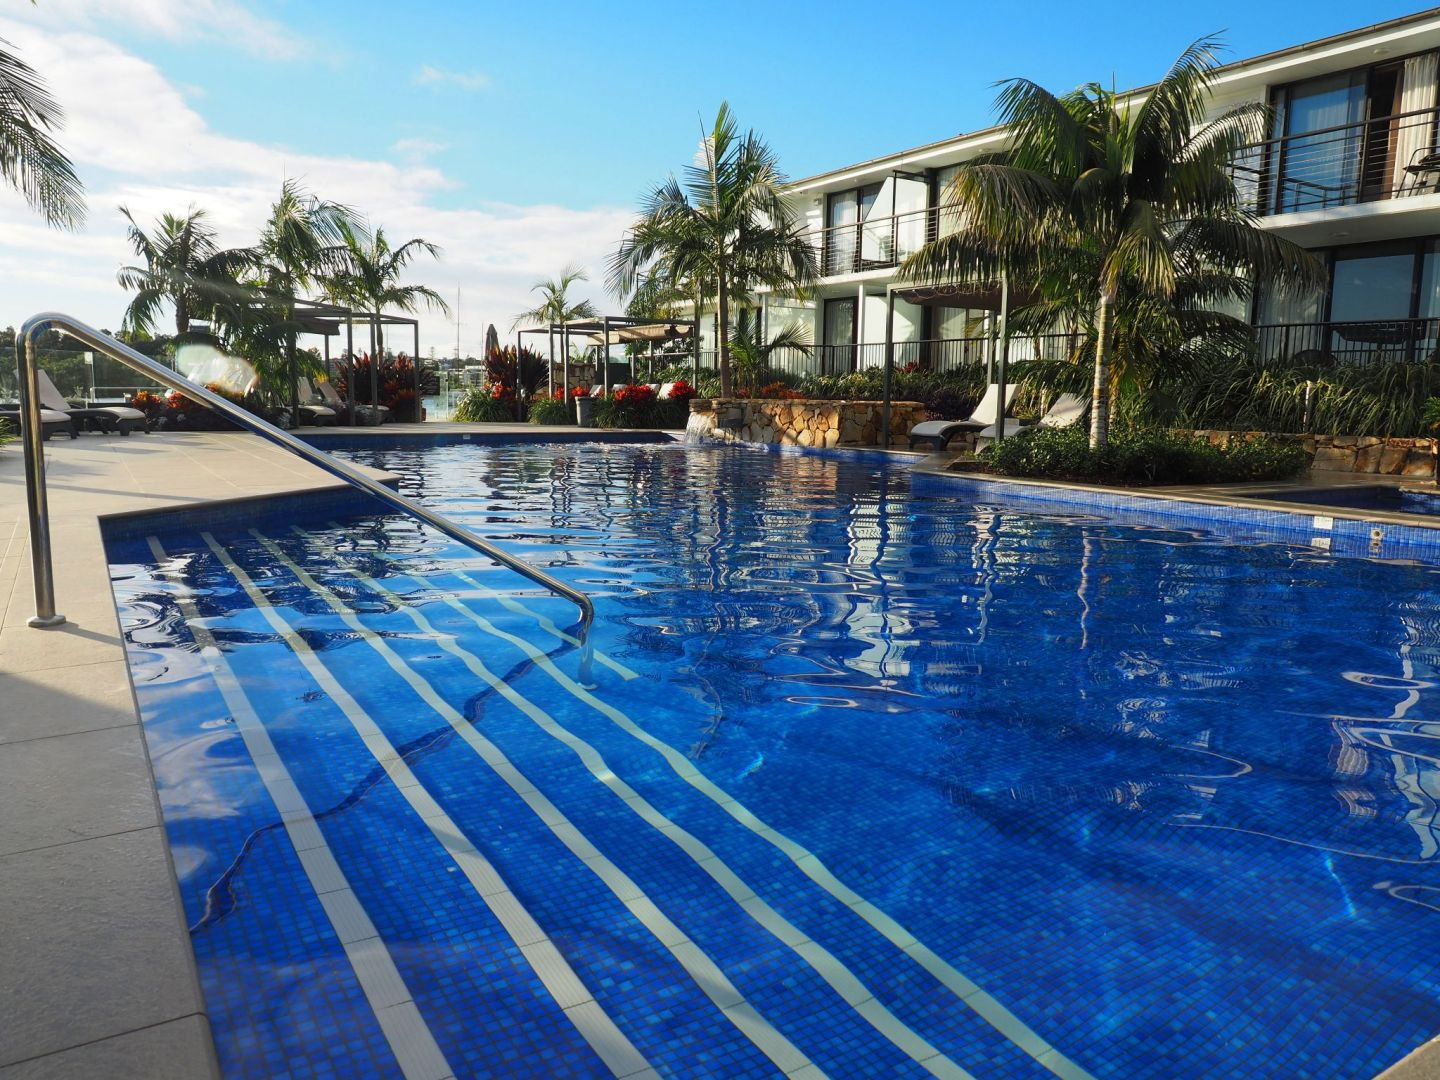 Hotel Pool Sails Port Macquarie